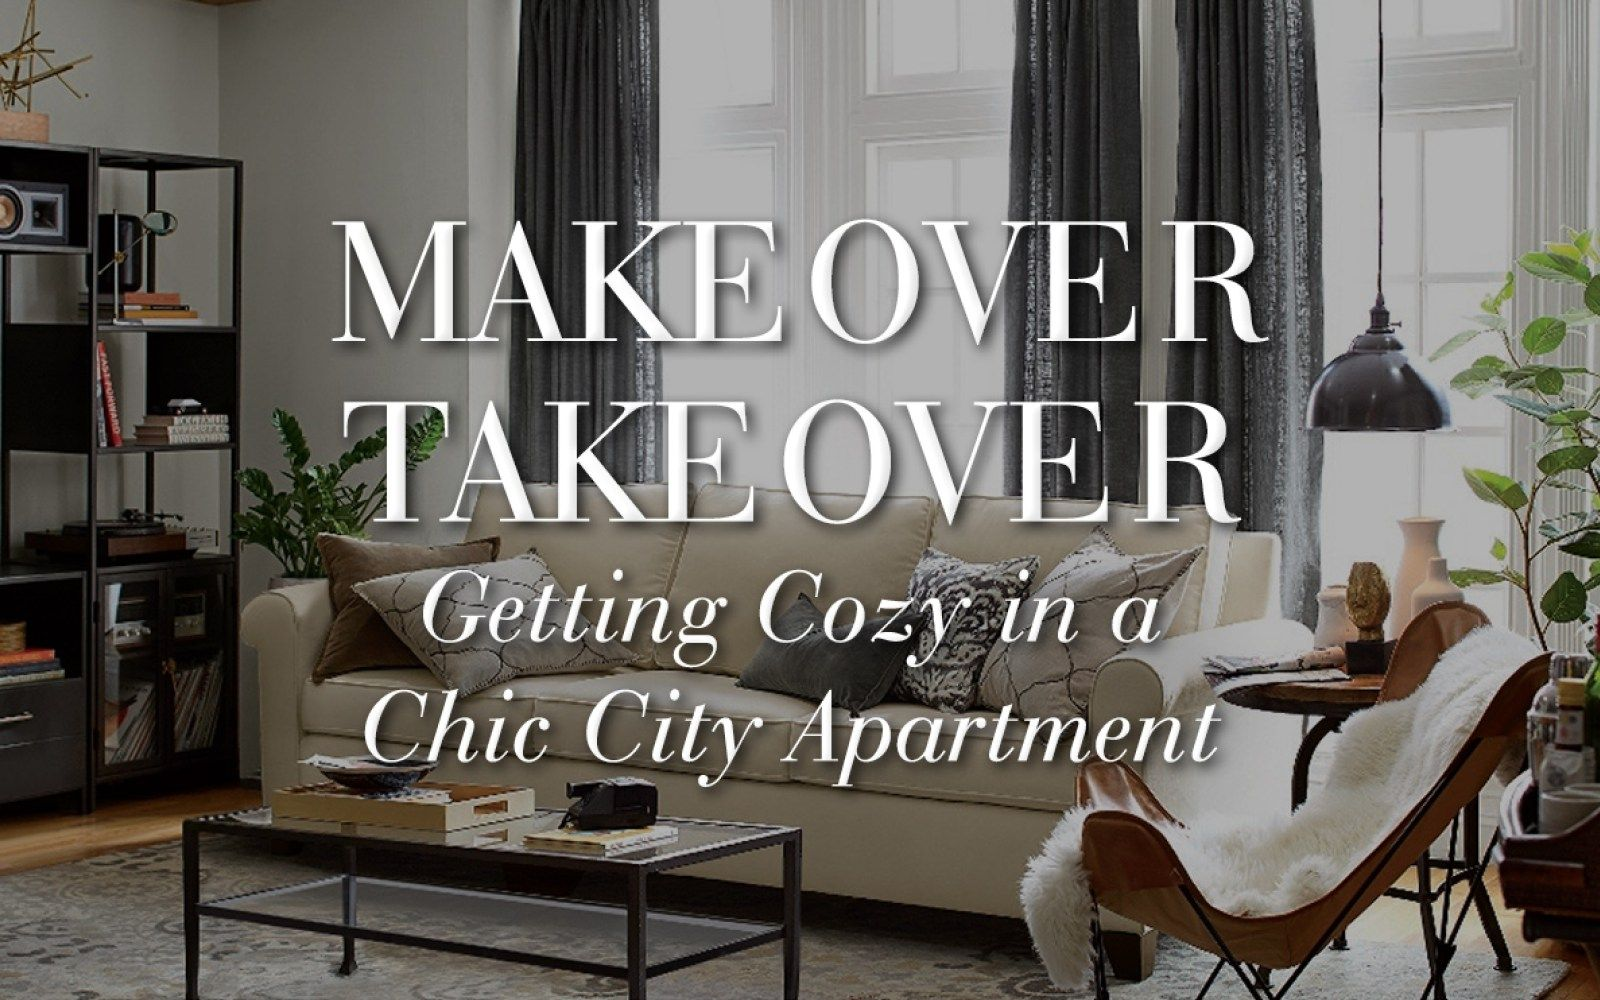 Makeover Takeover A Chic City Apartment Gets Cozy Pottery Barn Lounge Interiors City Apartment Getting Cozy